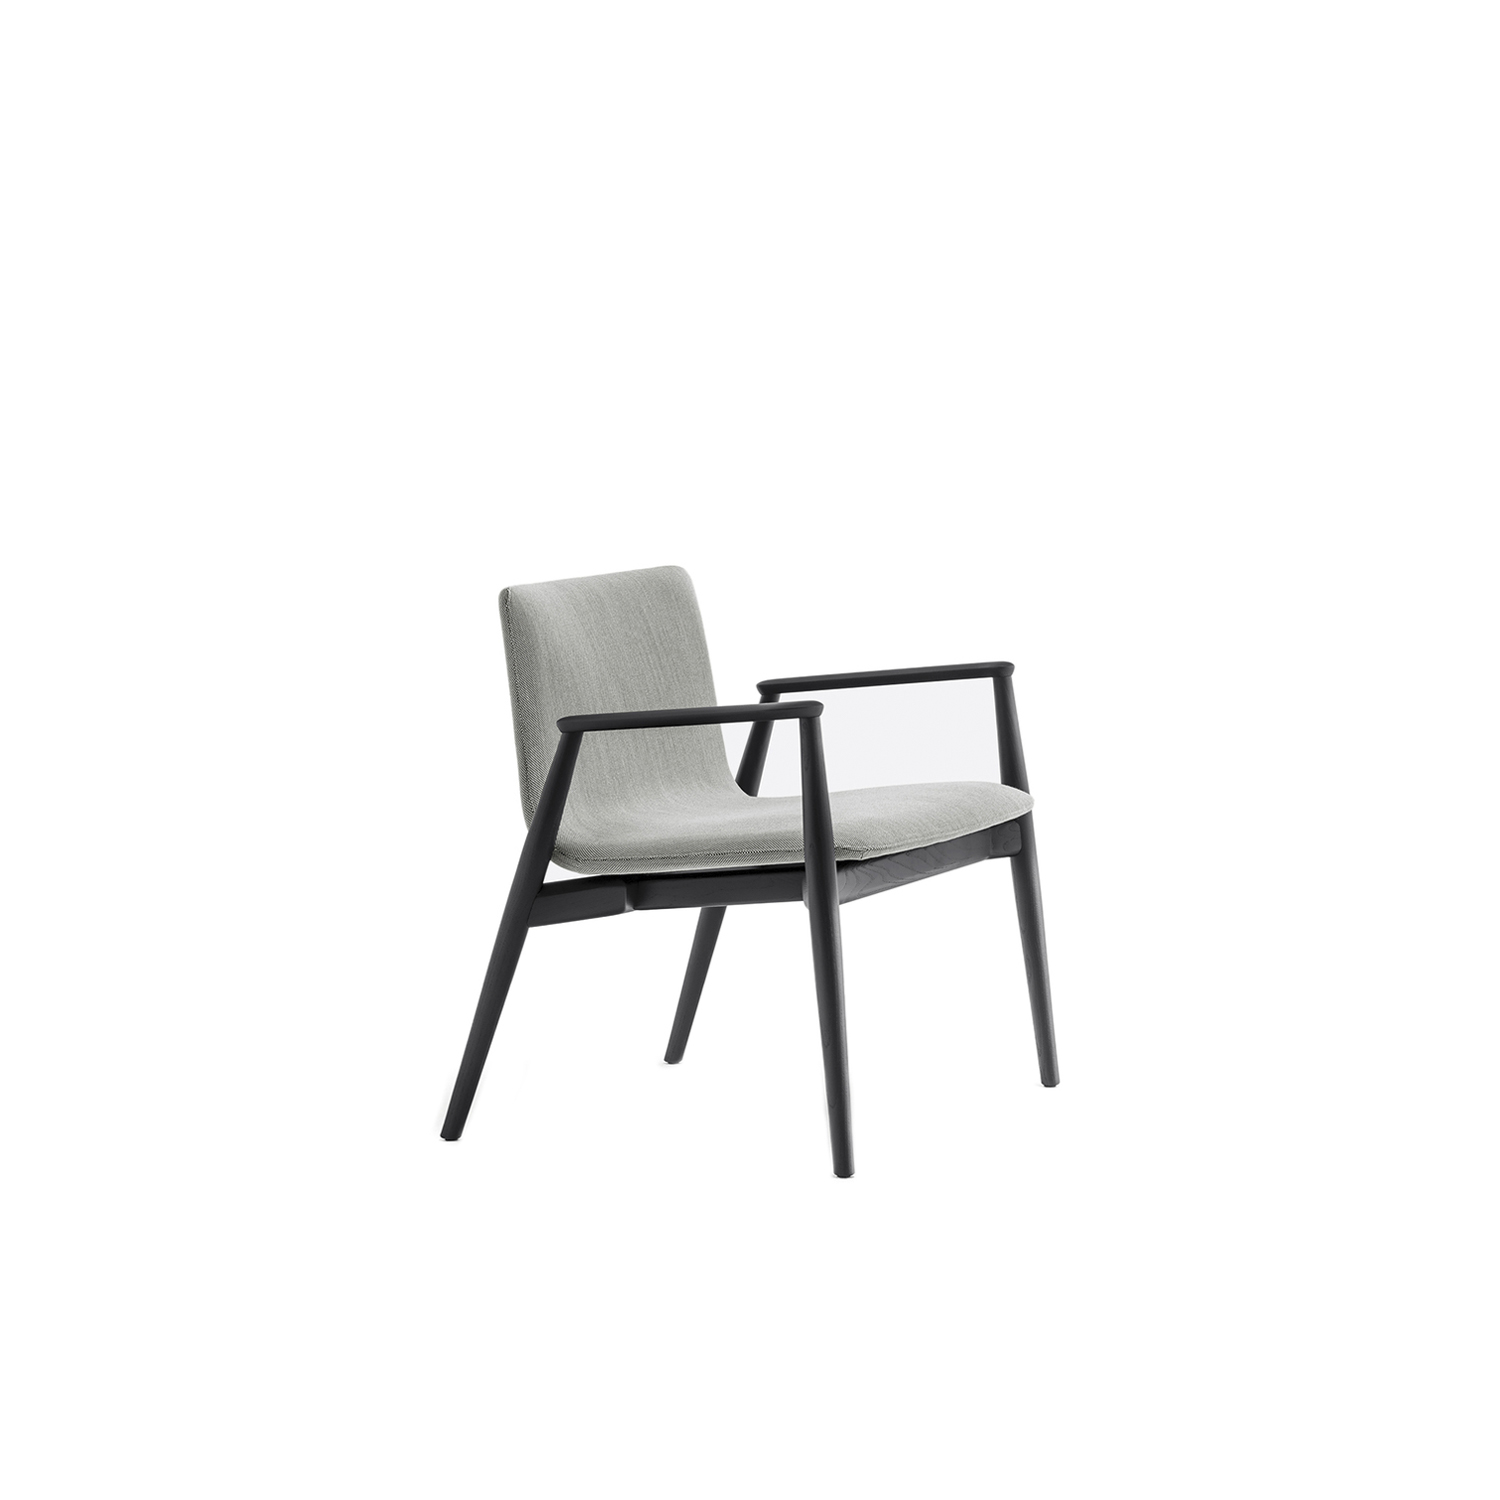 Malmö Lounge Chair Upholstered - Malmö family expands to new contexts entering in lounge environments, waiting areas and cafes. Lounge armchair is made of solid ash wood in bleached, black or light grey stained finish, plywood shell upholstered with fabric.